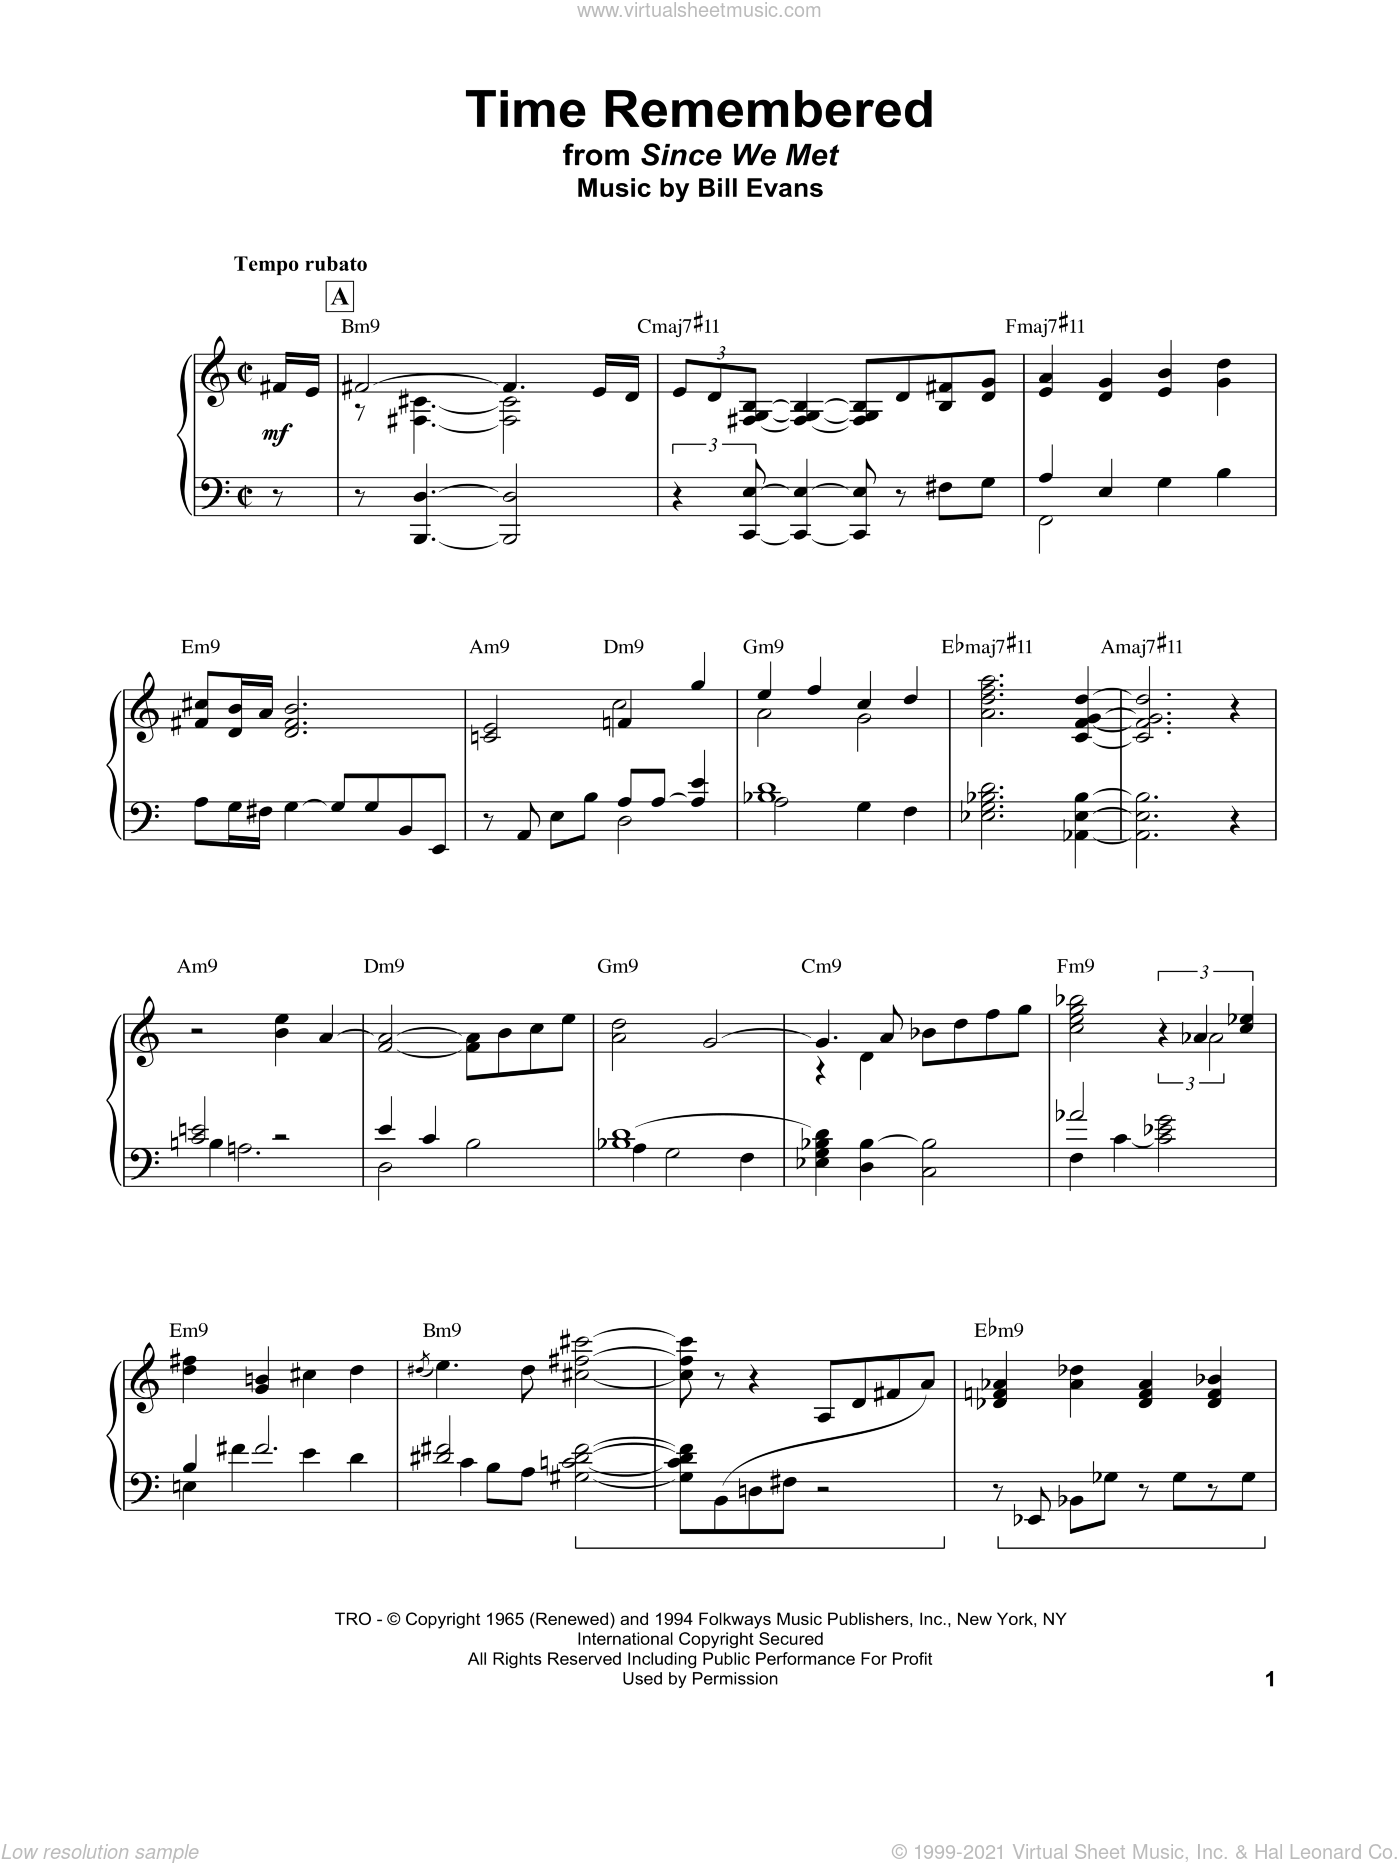 Time Remembered sheet music for piano solo by Bill Evans, intermediate